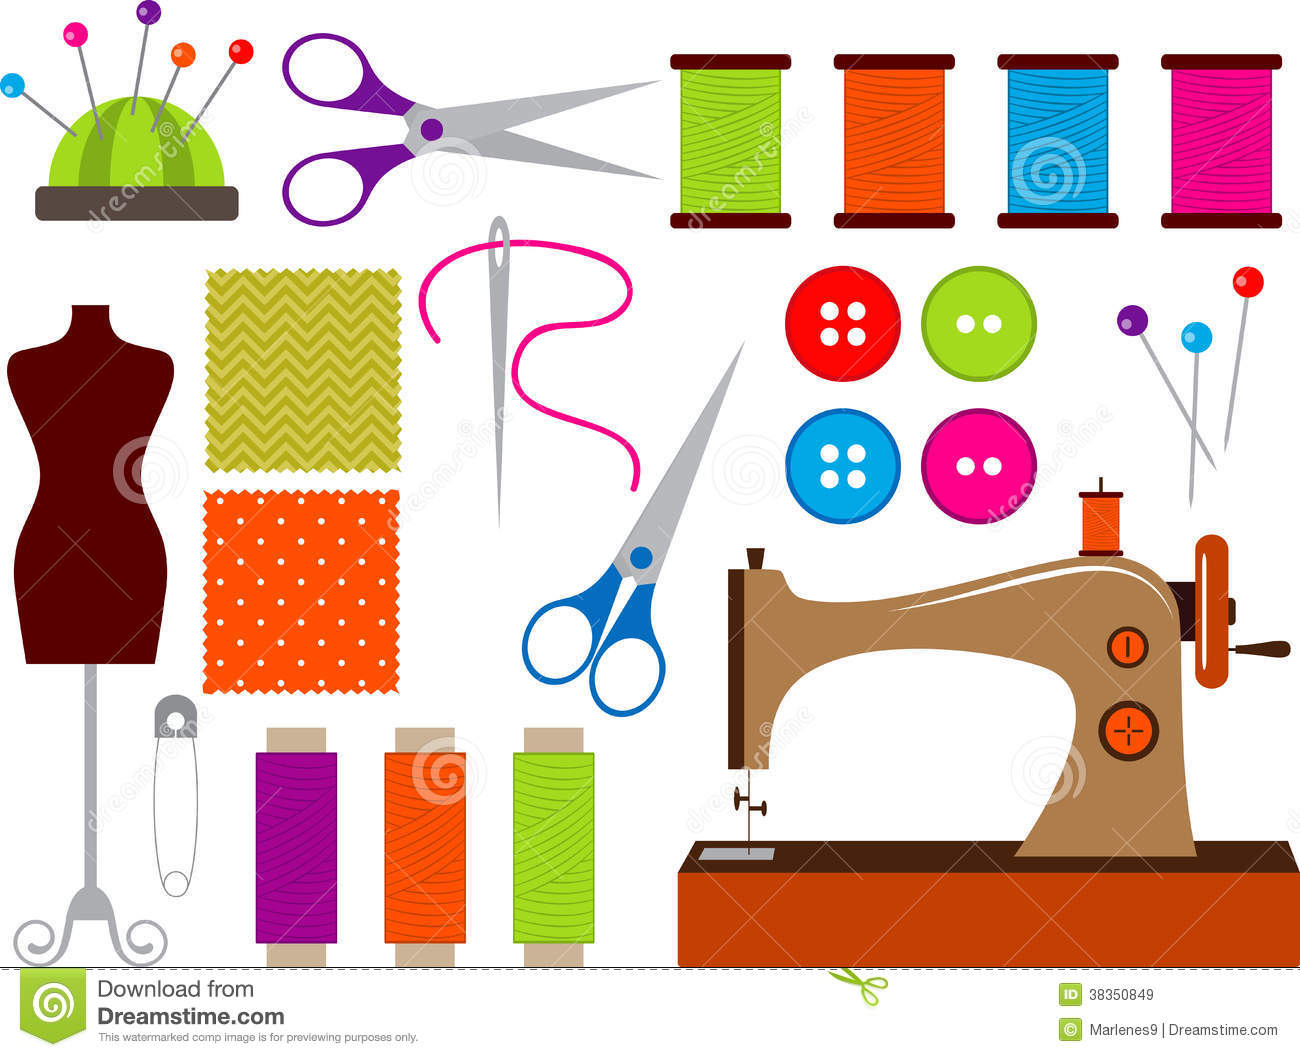 Free sewing clipart downloads picture black and white download 34+ Sewing Clipart Free | ClipartLook picture black and white download